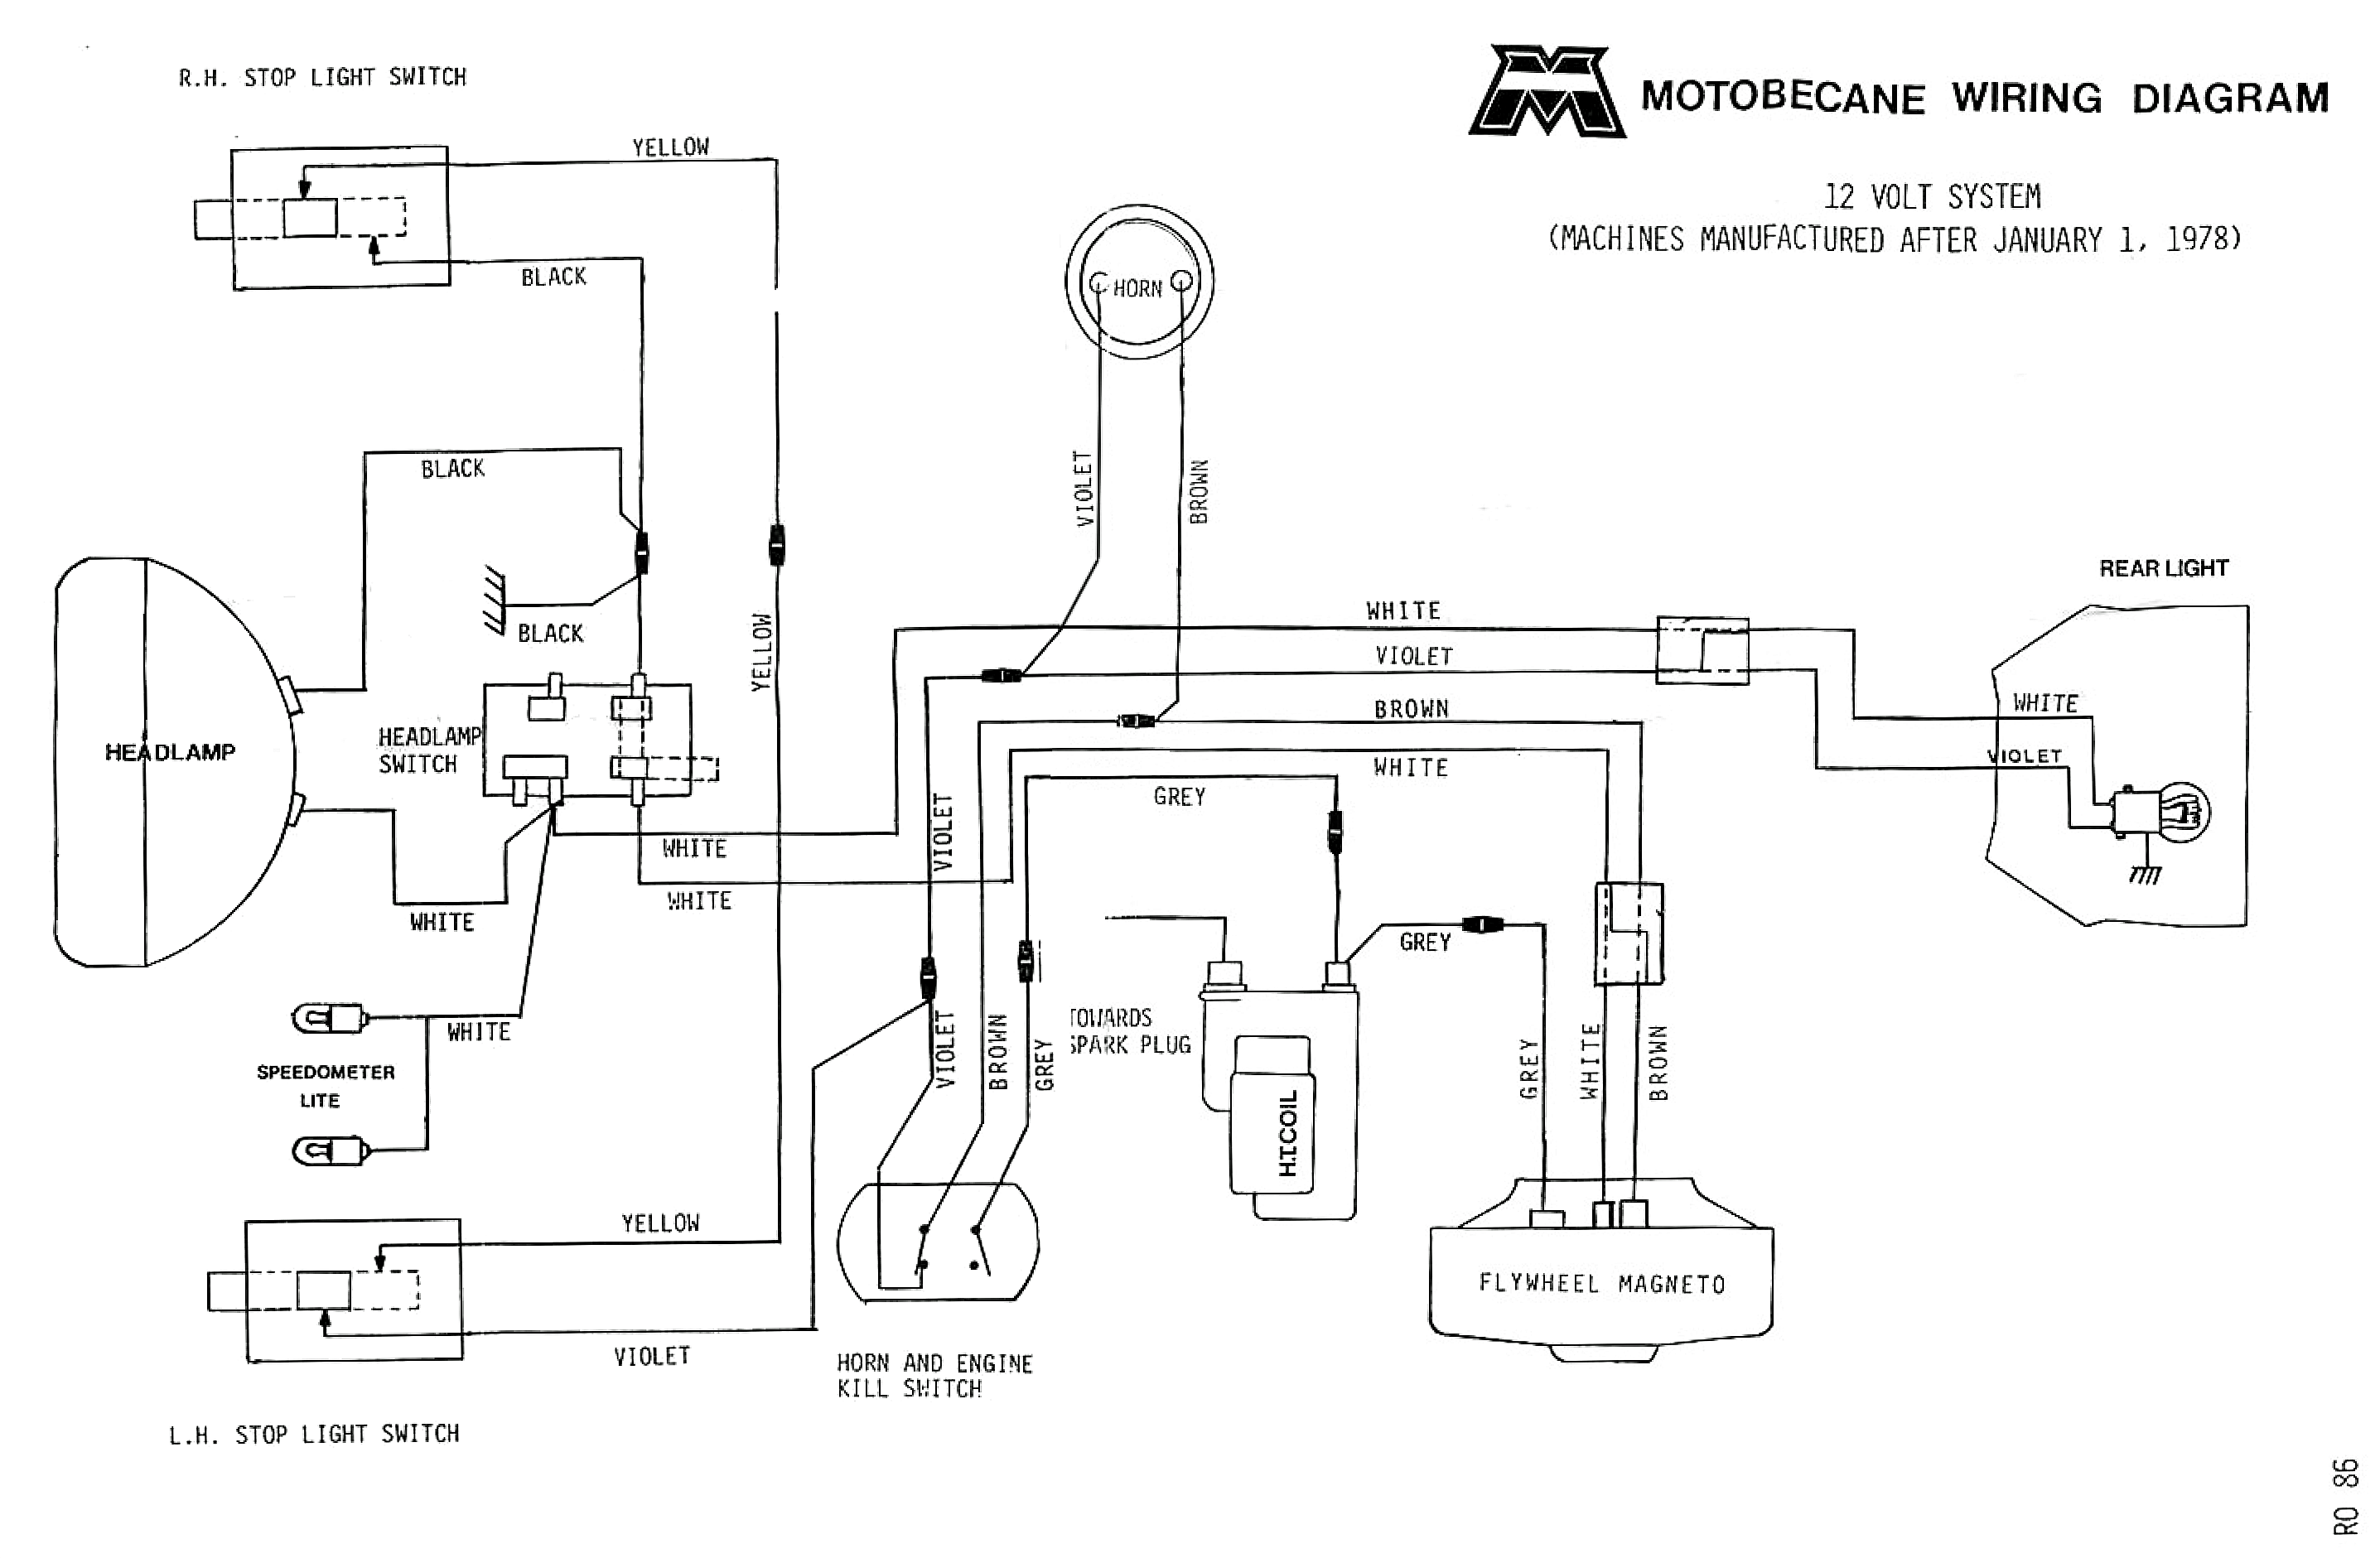 Motobecane12v_wiring_diagram motobecane wiring diagrams moped wiki 12 volt wiring diagram at gsmx.co